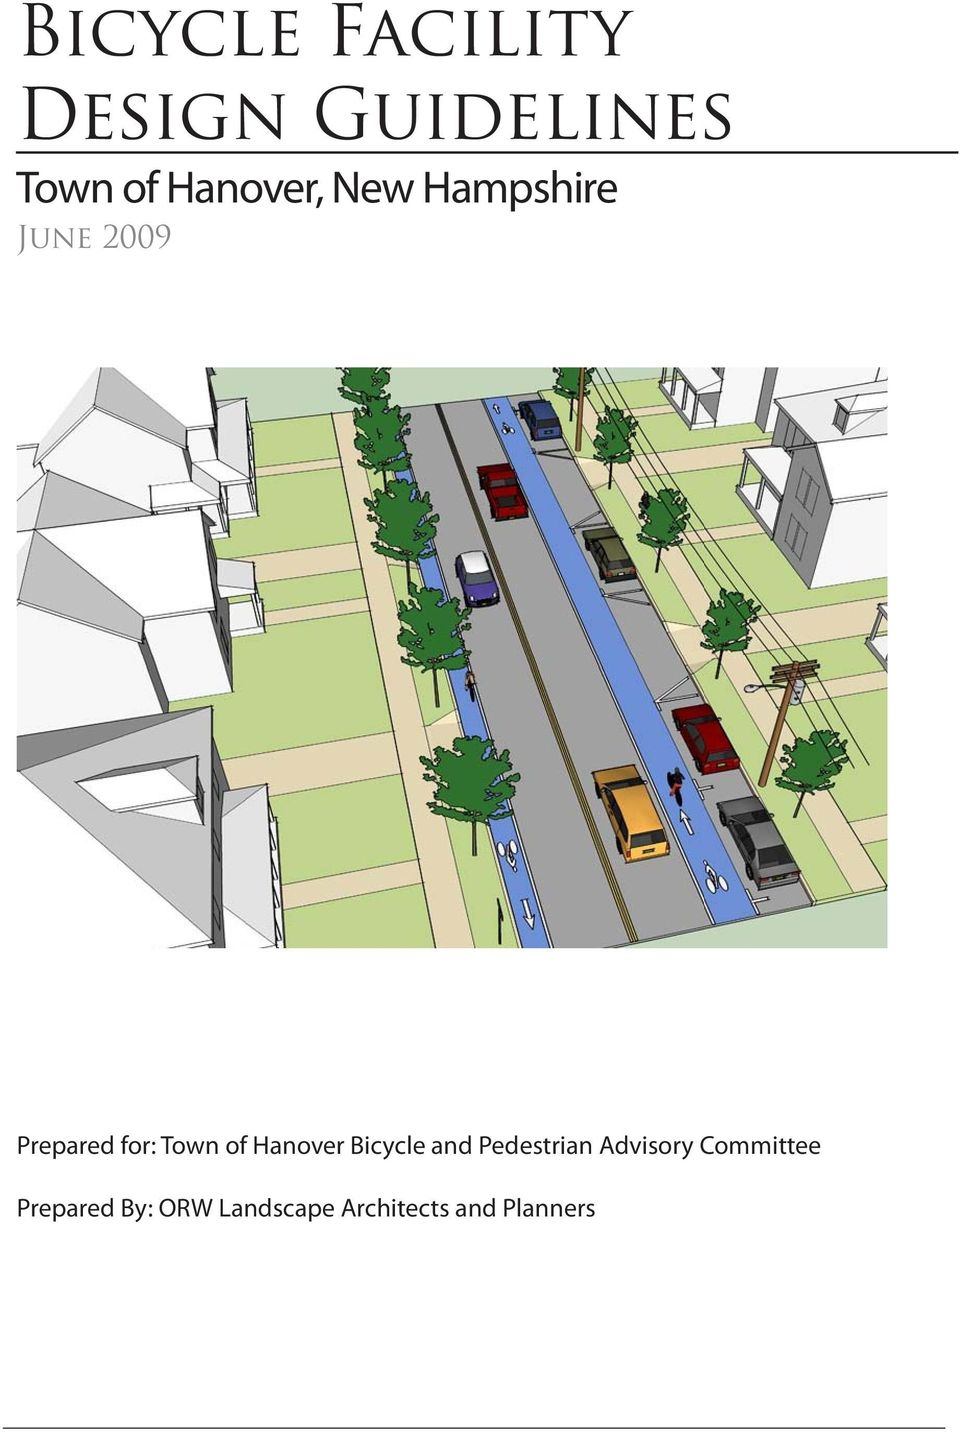 and Pedestrian Advisory Committee